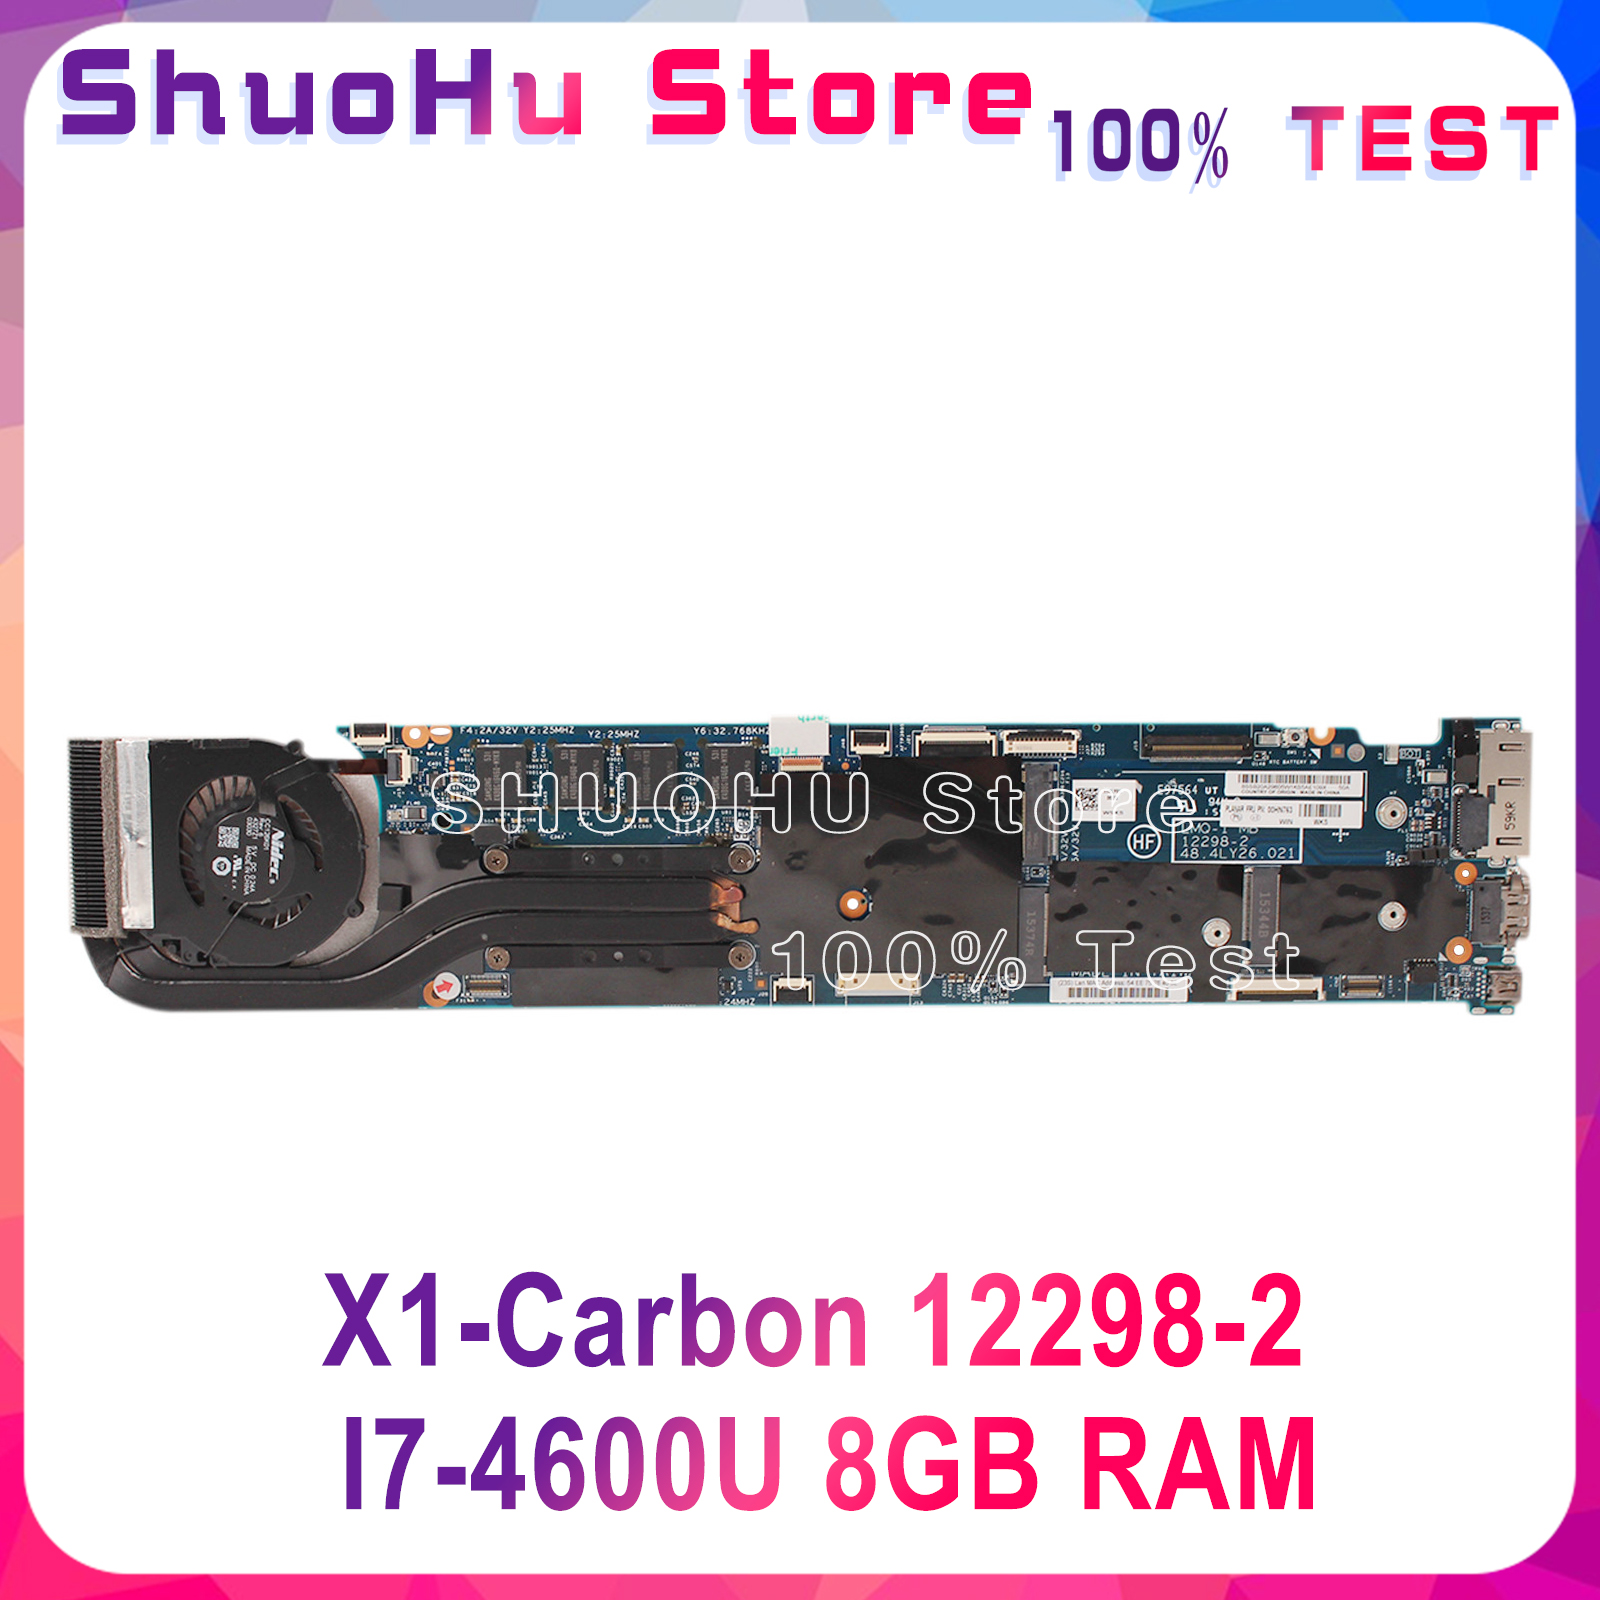 KEFU X1-Carbon motherboard for Lenovo thinkpad X1 X1C Laptop Motherboard 12298-2 <font><b>I7</b></font>-<font><b>4600U</b></font> CPU 8GB RAM original tested image